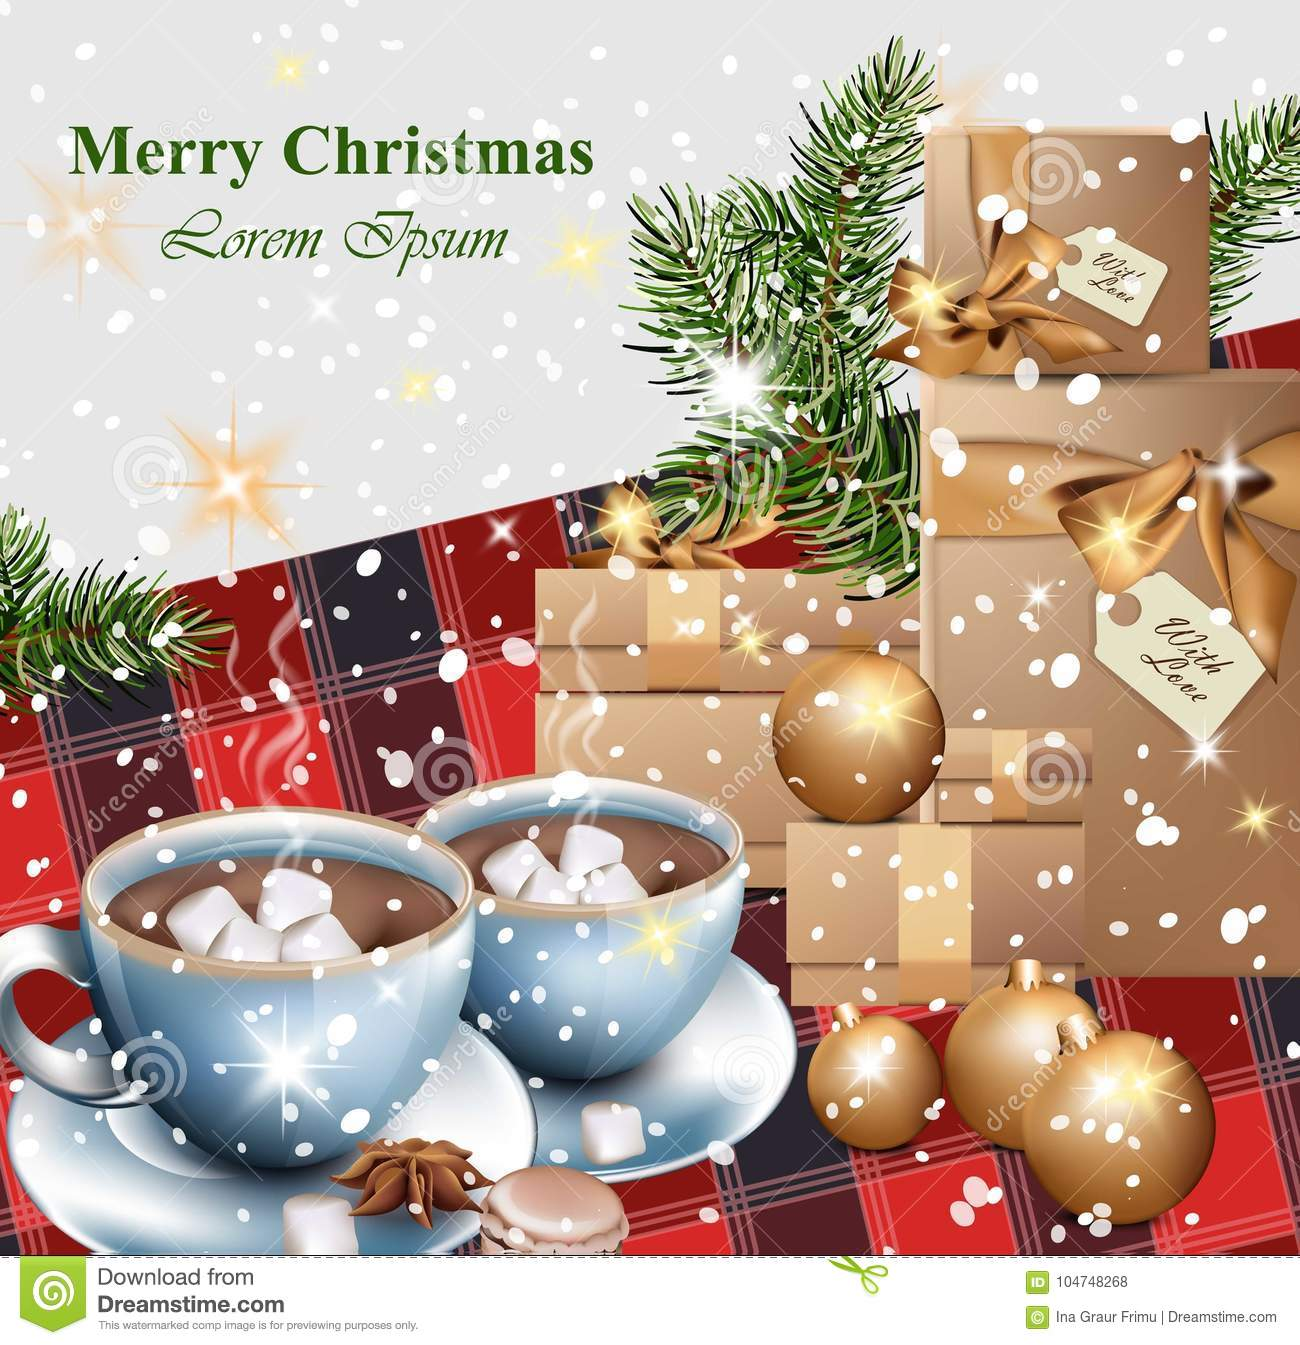 Merry Christmas Card With Gifts And Hot Chocolate Cups Vector